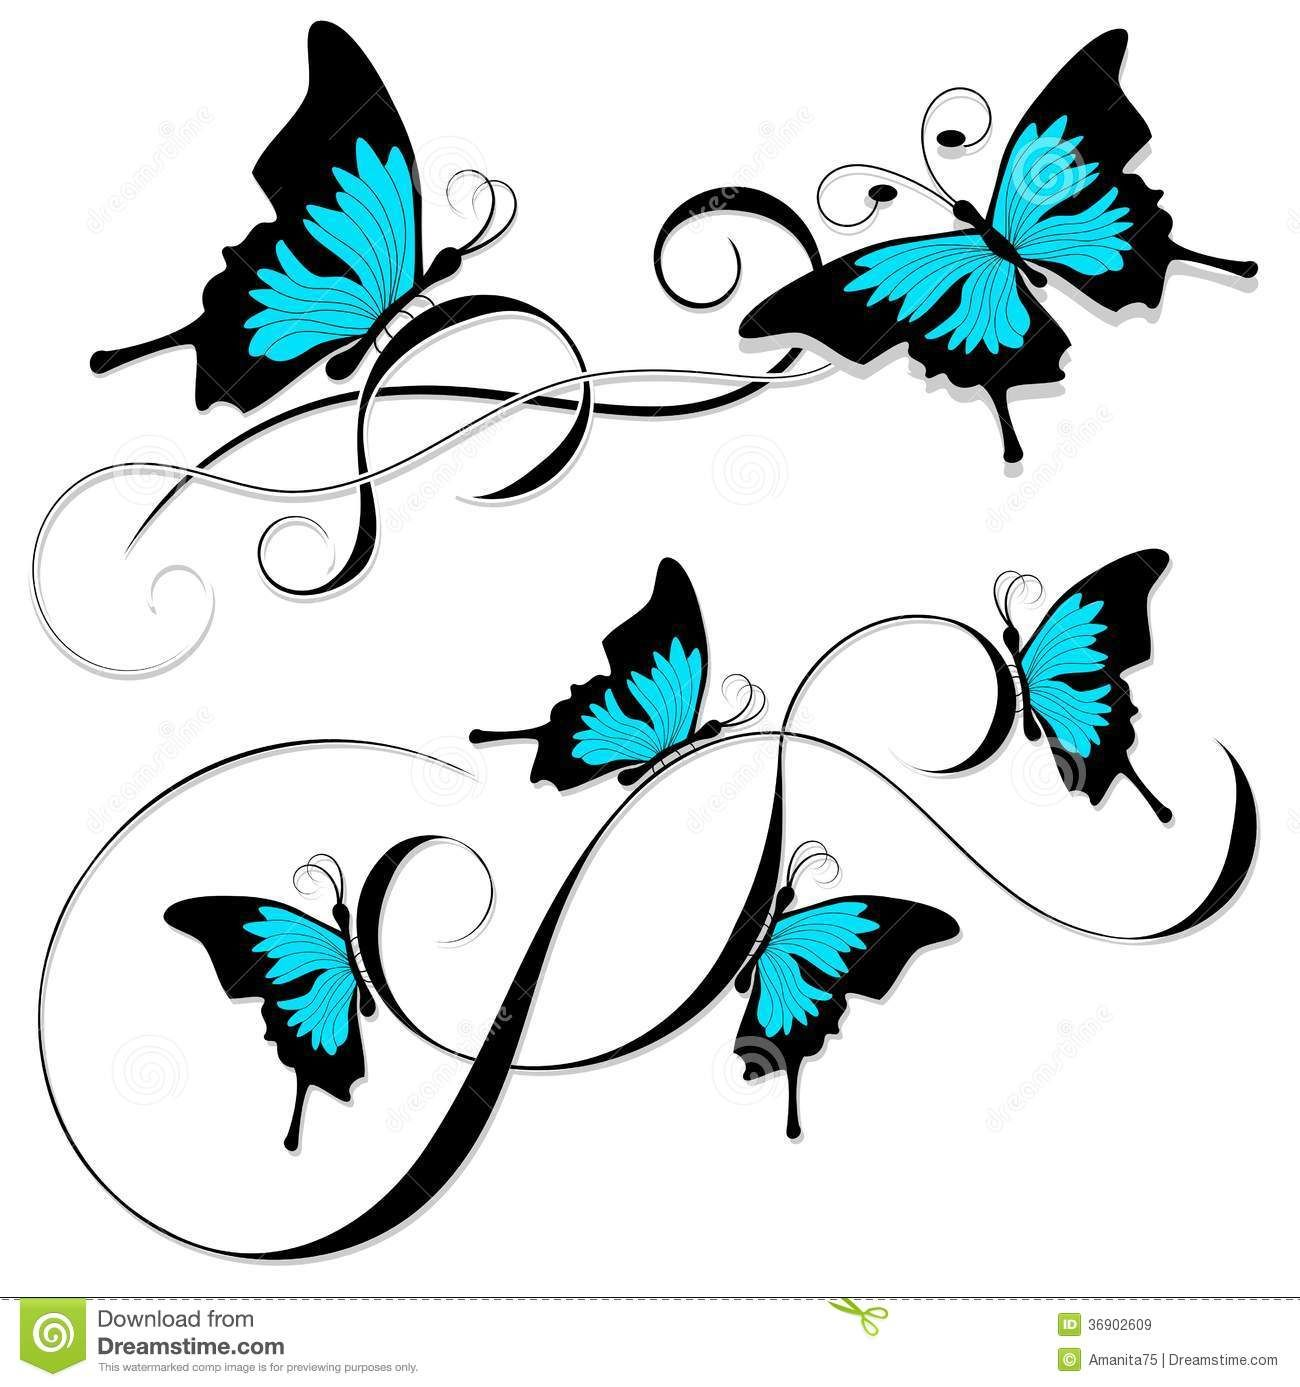 butterflies migrating tattoo images - Google Search ...